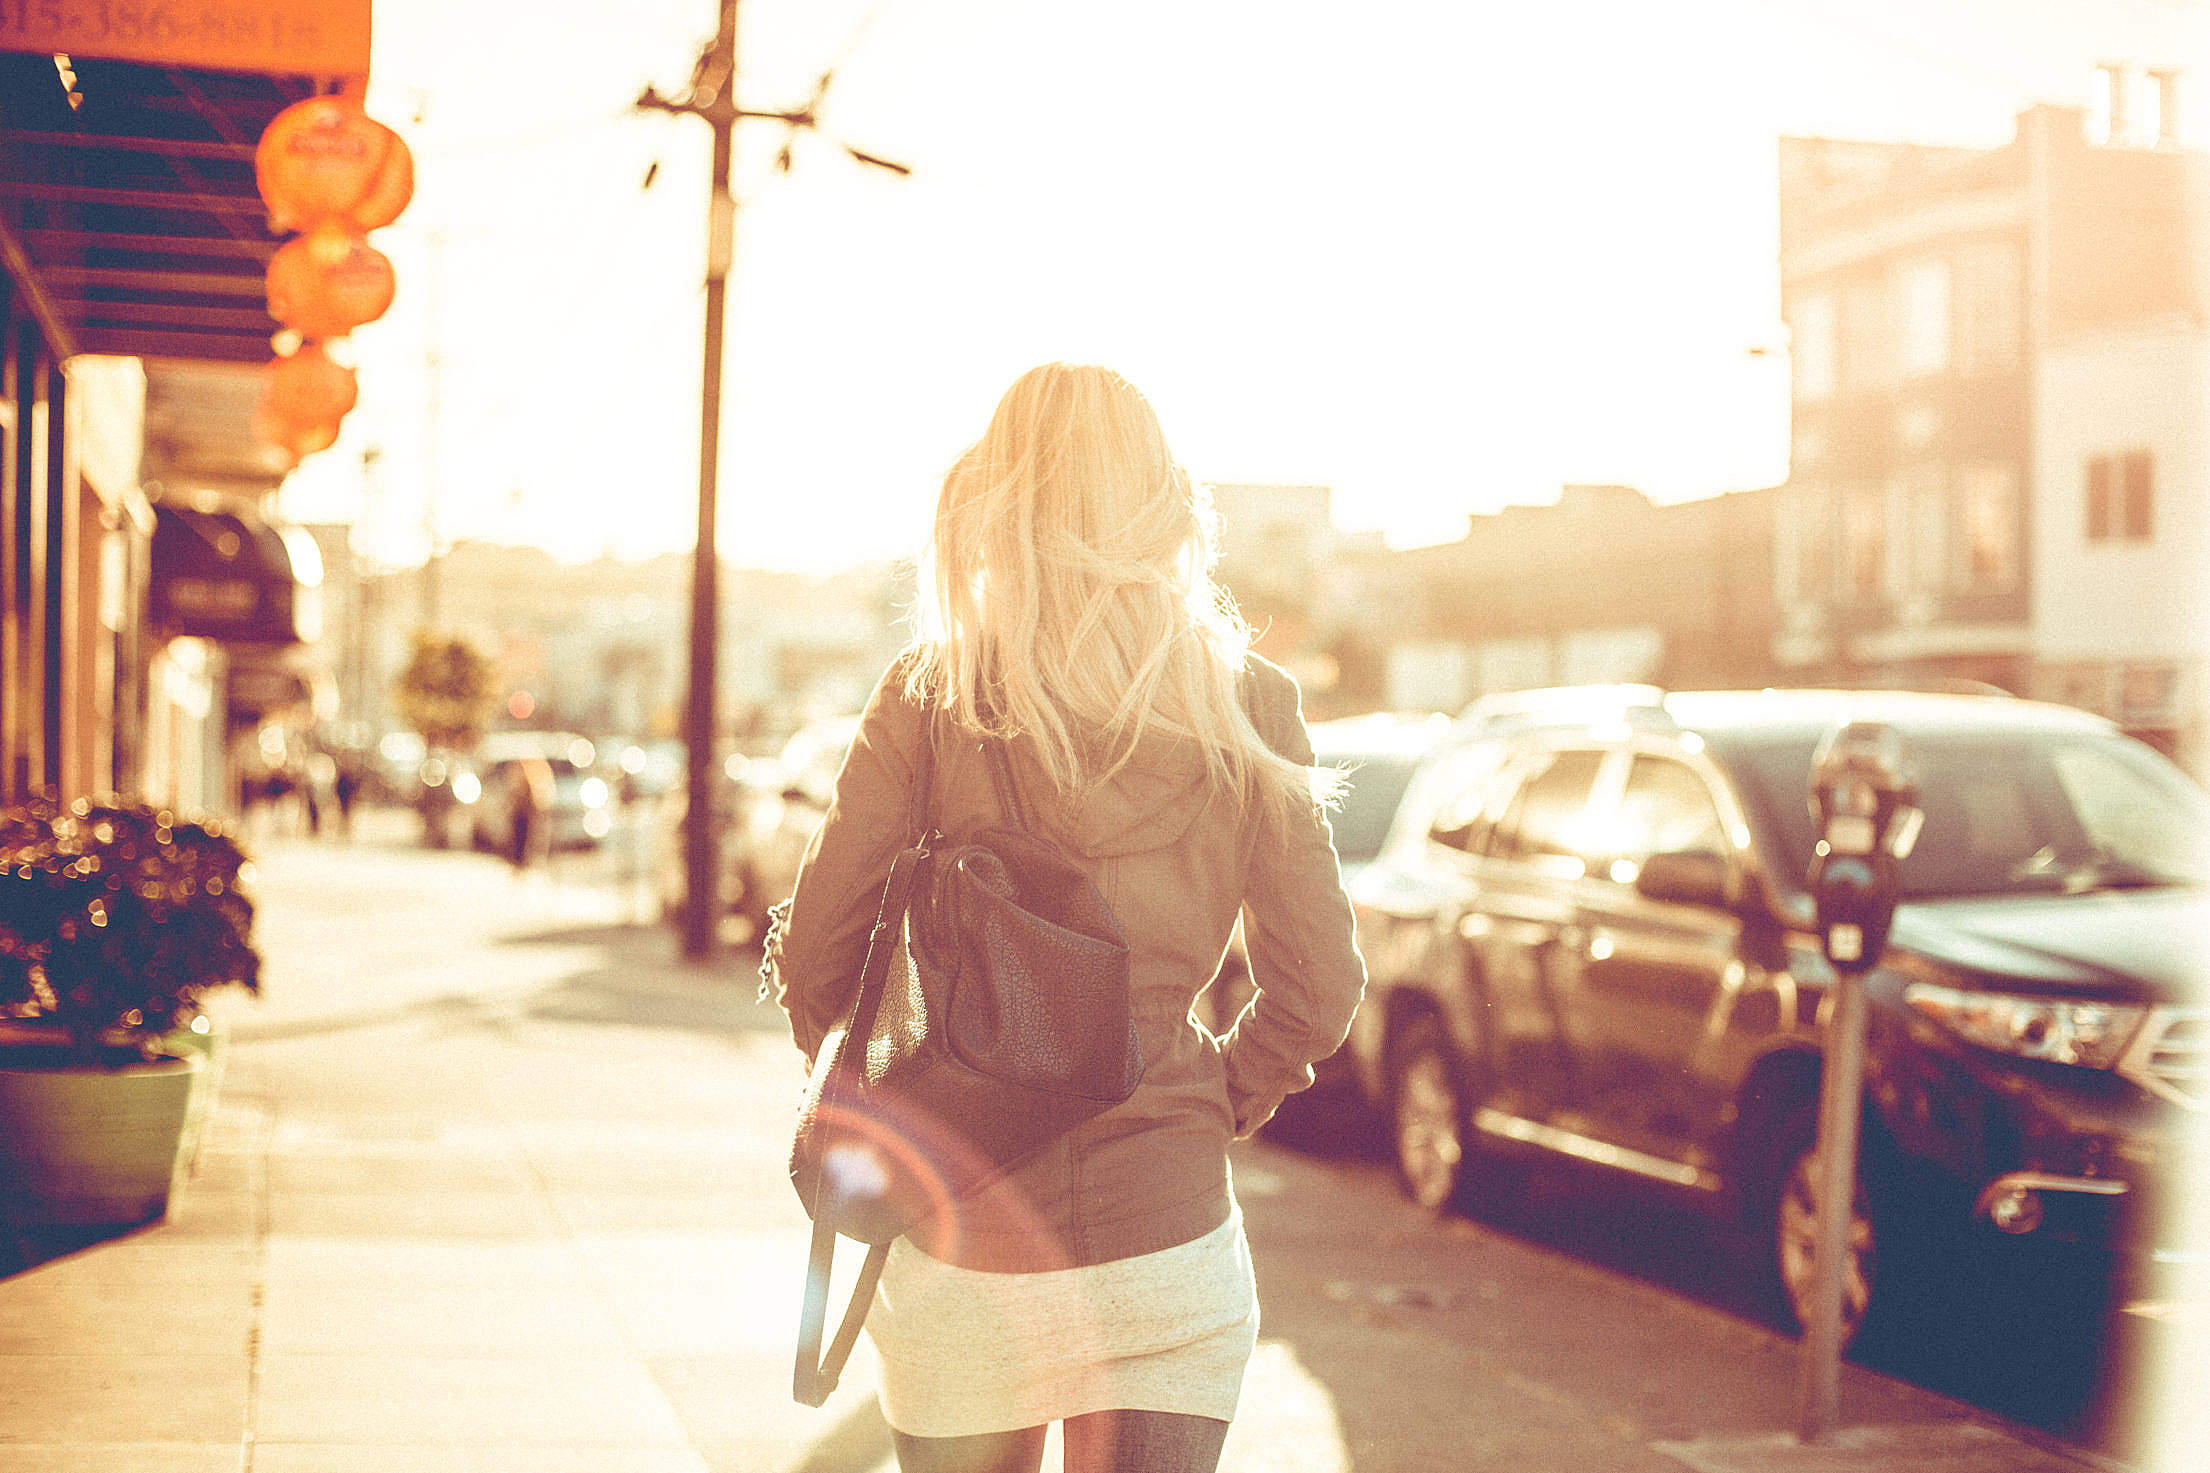 Young Girl Walking Down the Street Free Stock Photo